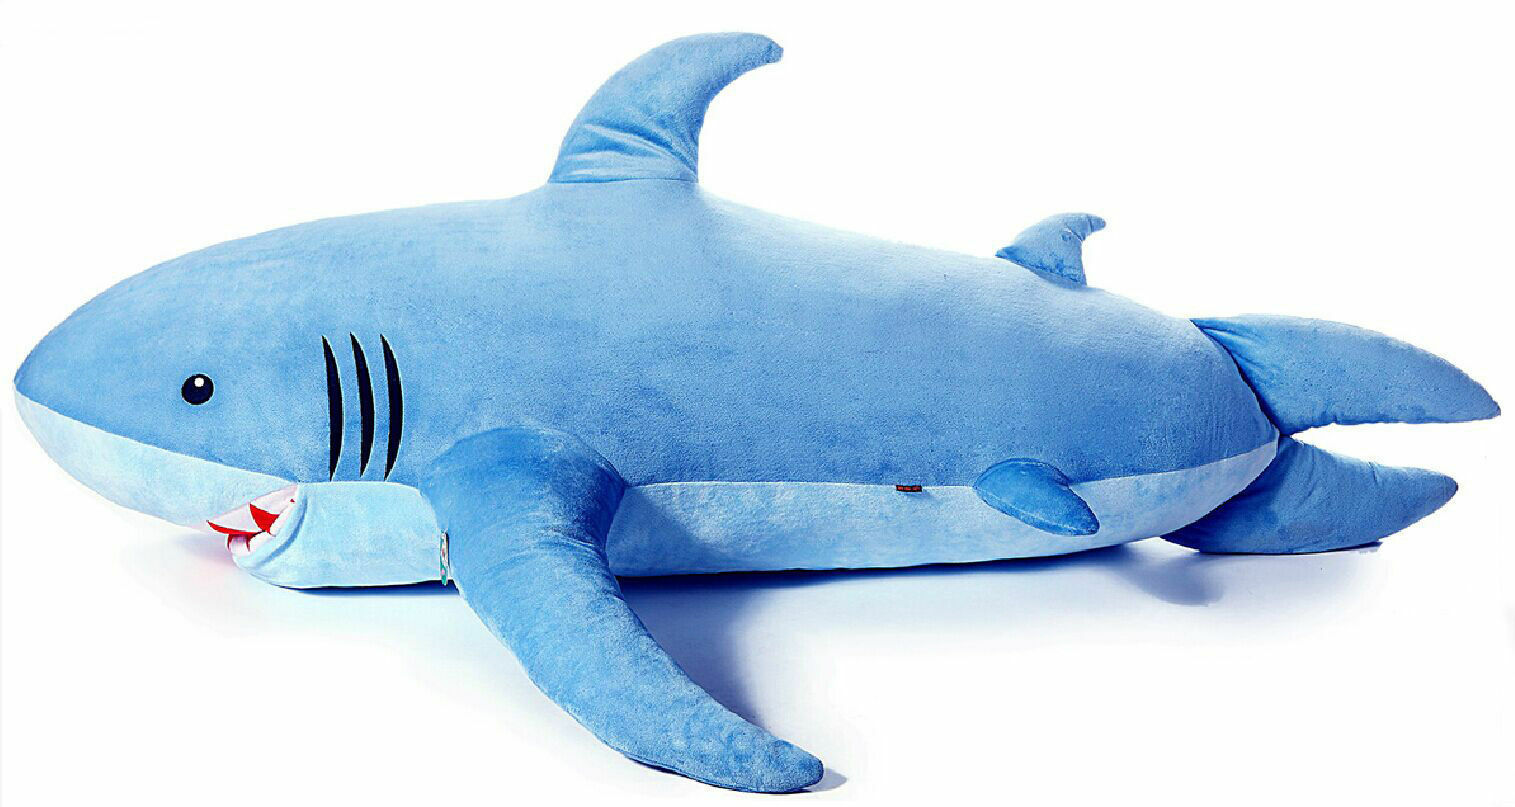 115cm New New New Huge Shark Stuffed Animal Stuffed Animals Plush Baby Toys Pillow Gifts bc62f6